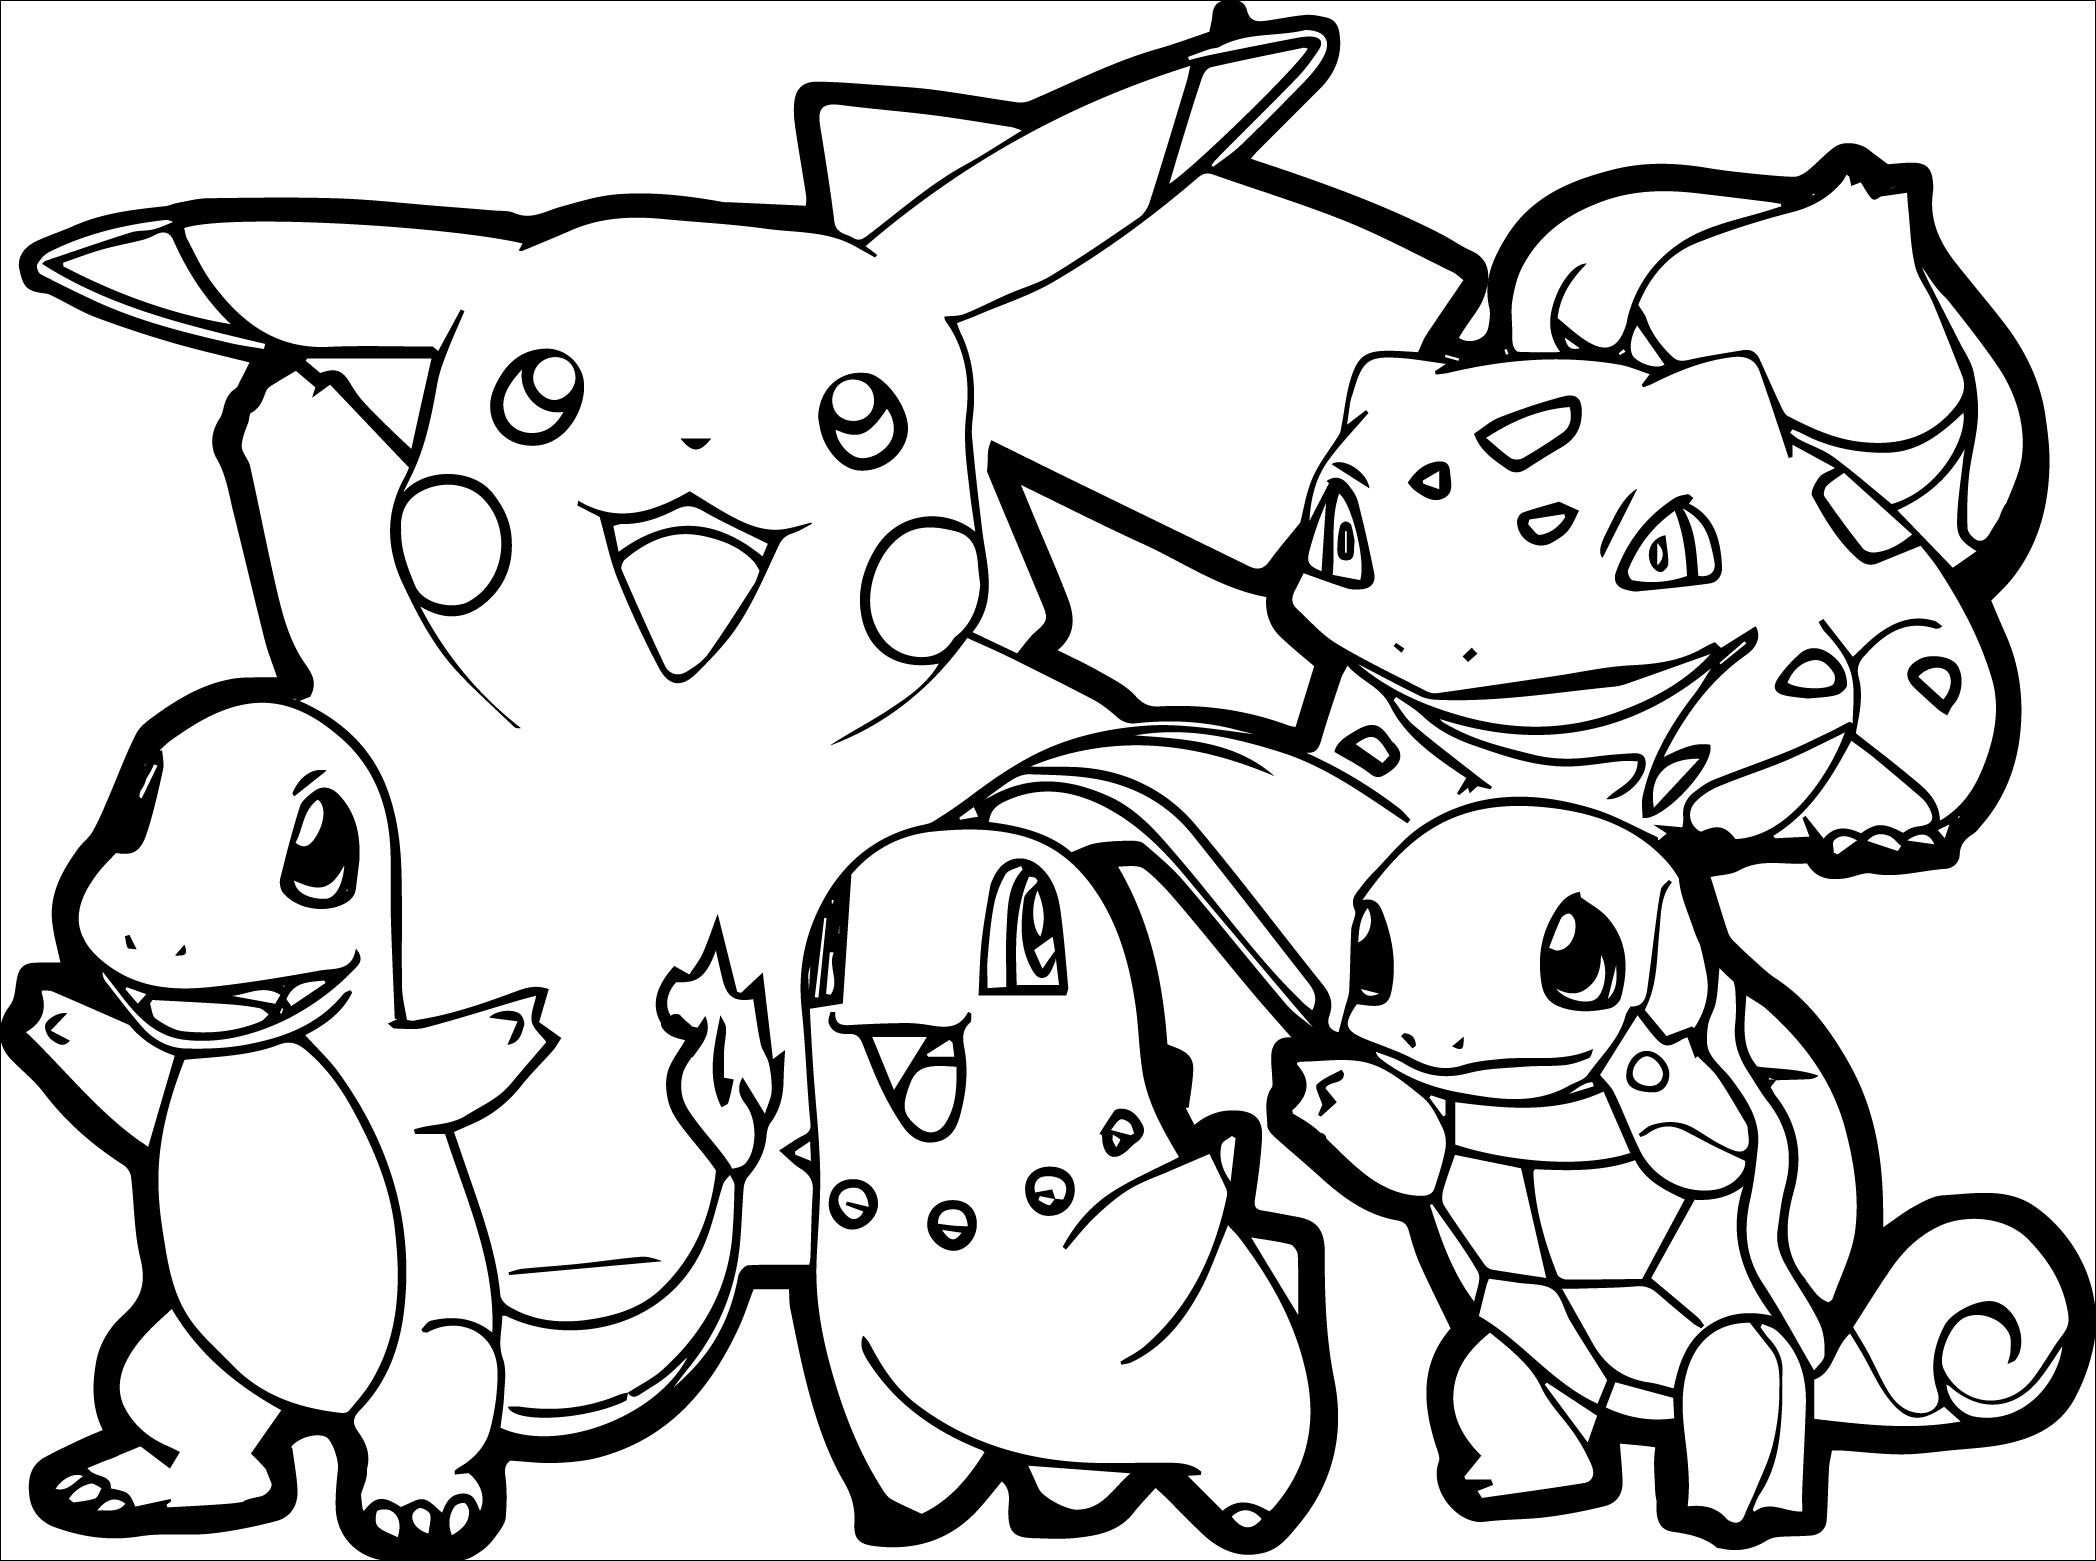 24 Complexe Pokemon Coloriage Images